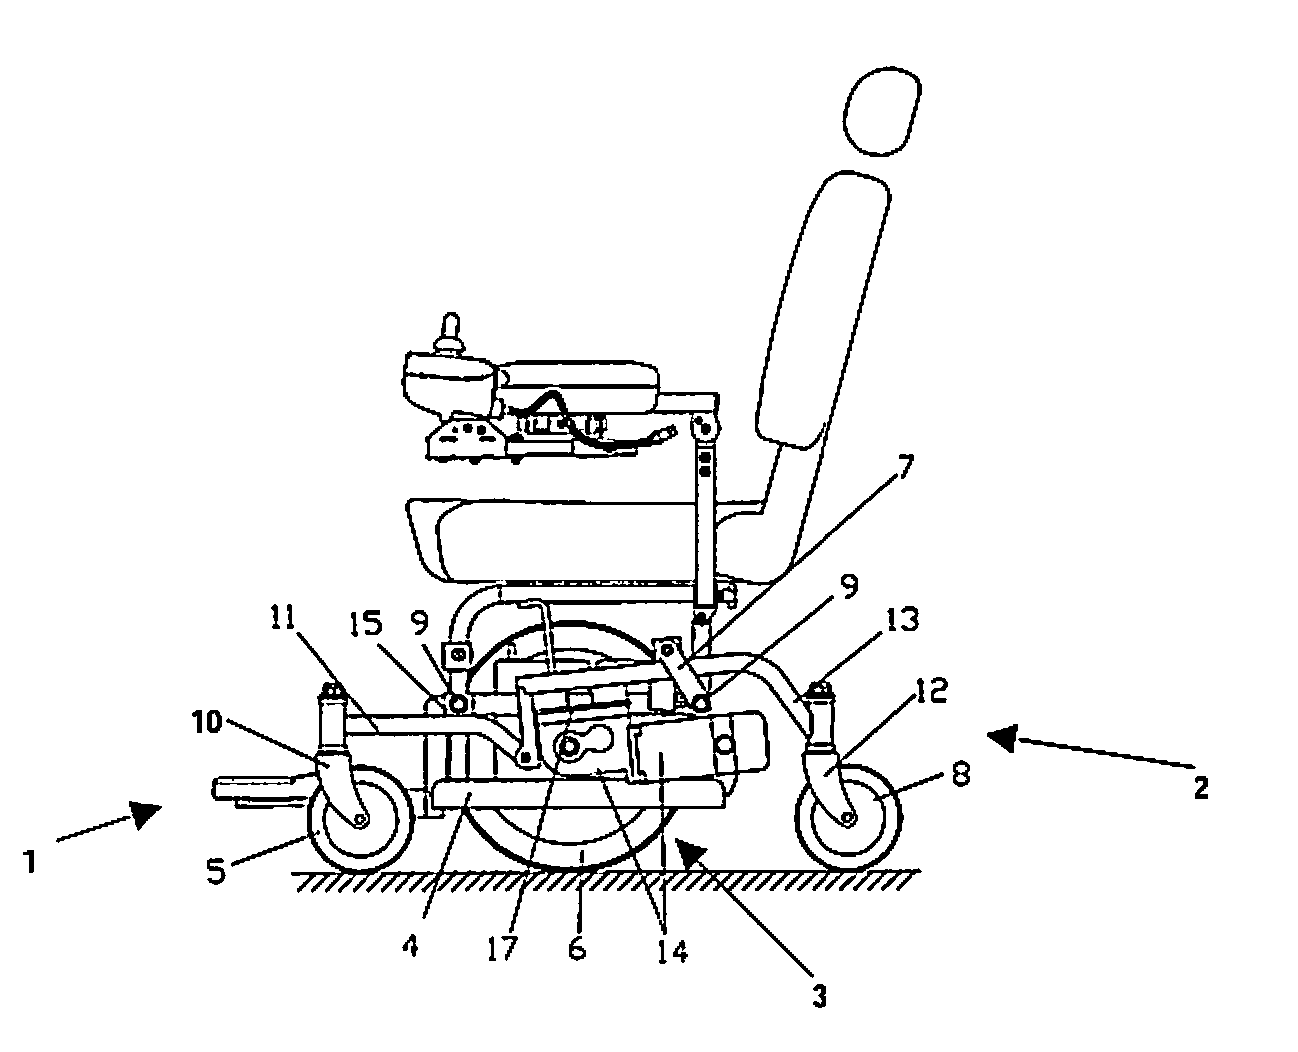 Electric Wheelchair Parts Diagram Pictures To Pin On